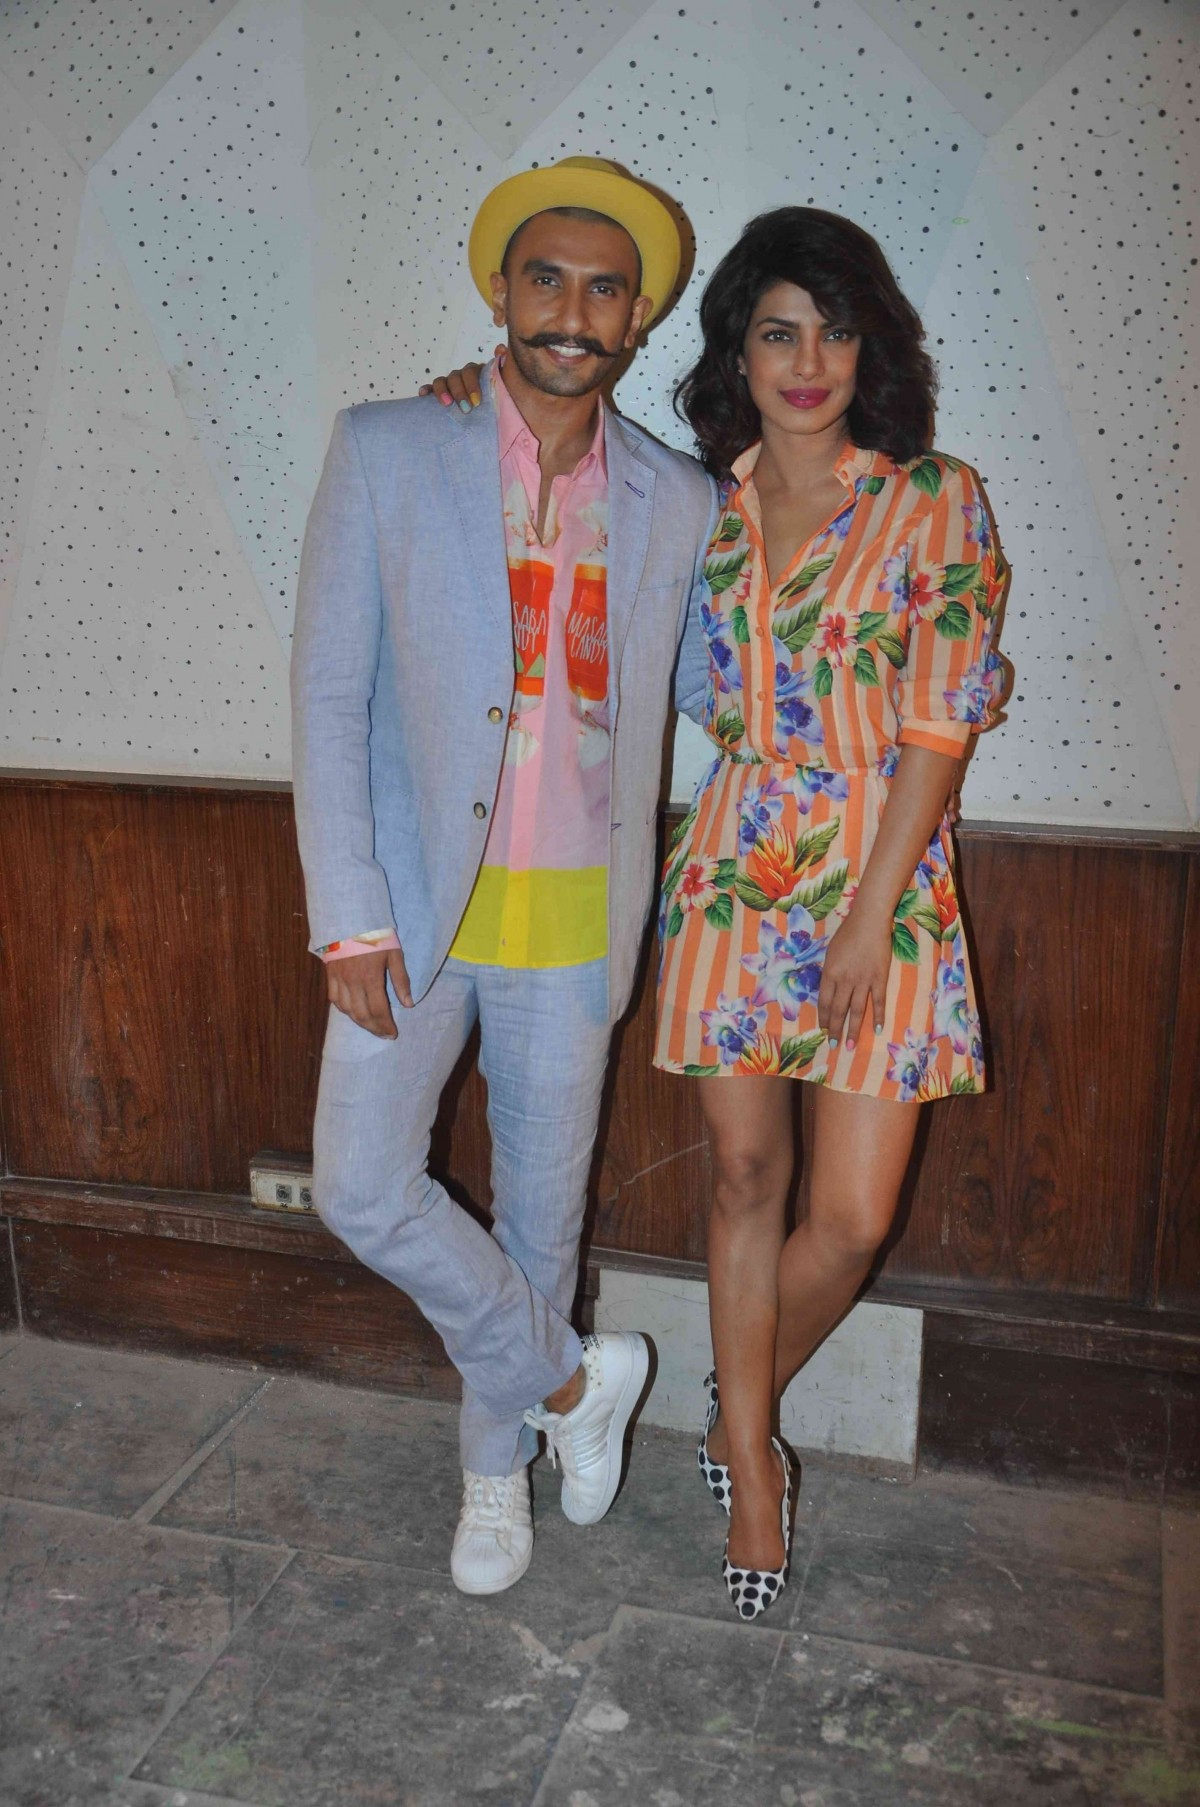 Ranveer Singh and Priyanka Chopra during 'Dil Dhadakne Do' press meet